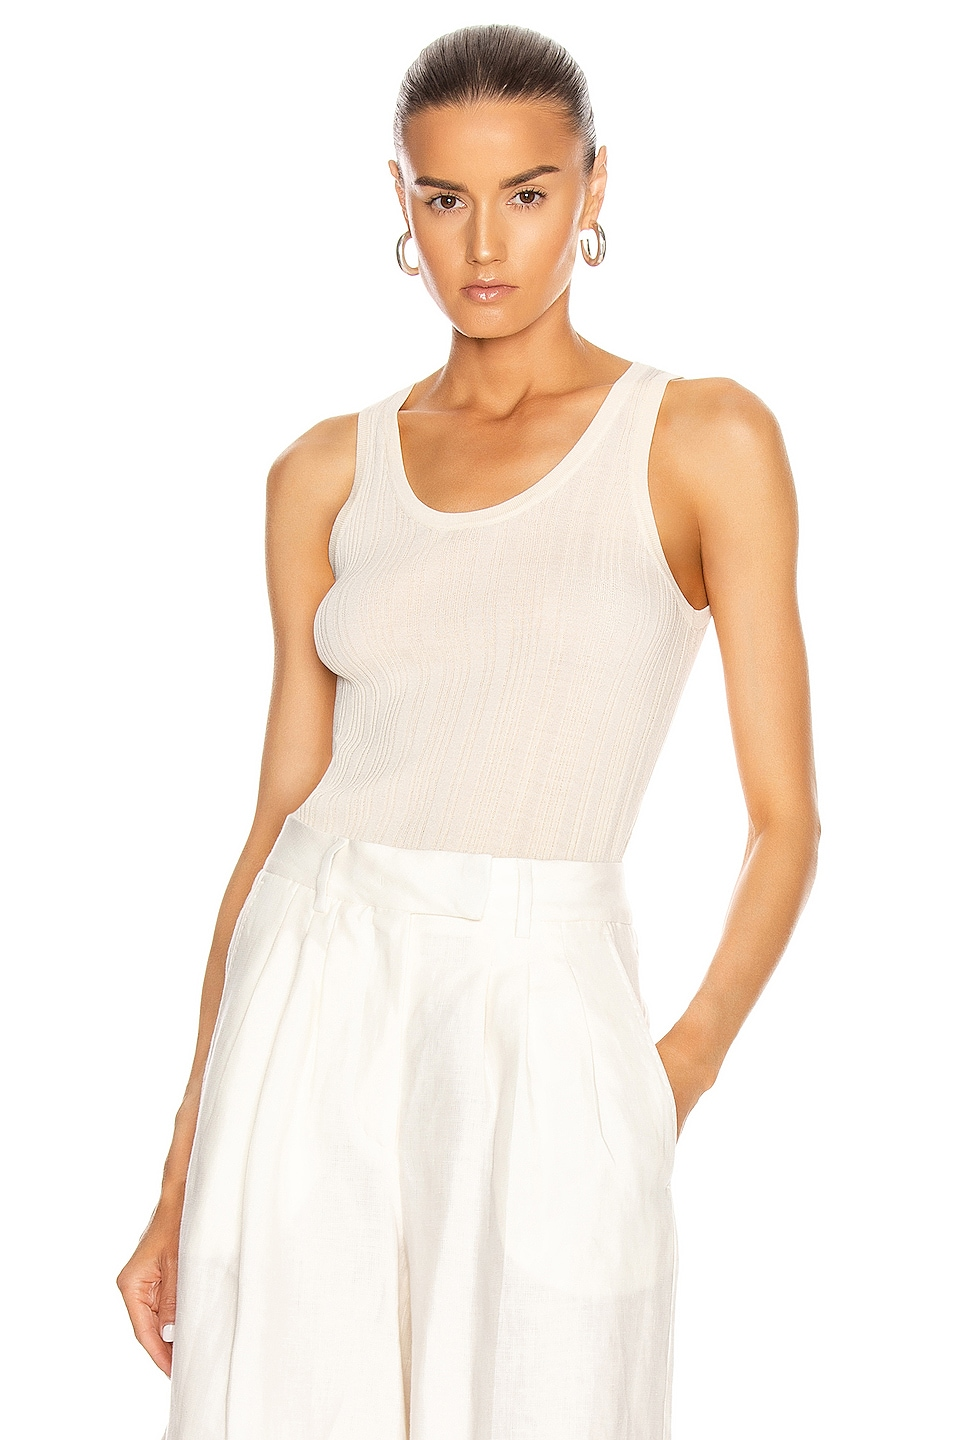 Image 1 of REMAIN Gere Sleeveless Knit Top in White Asparagus